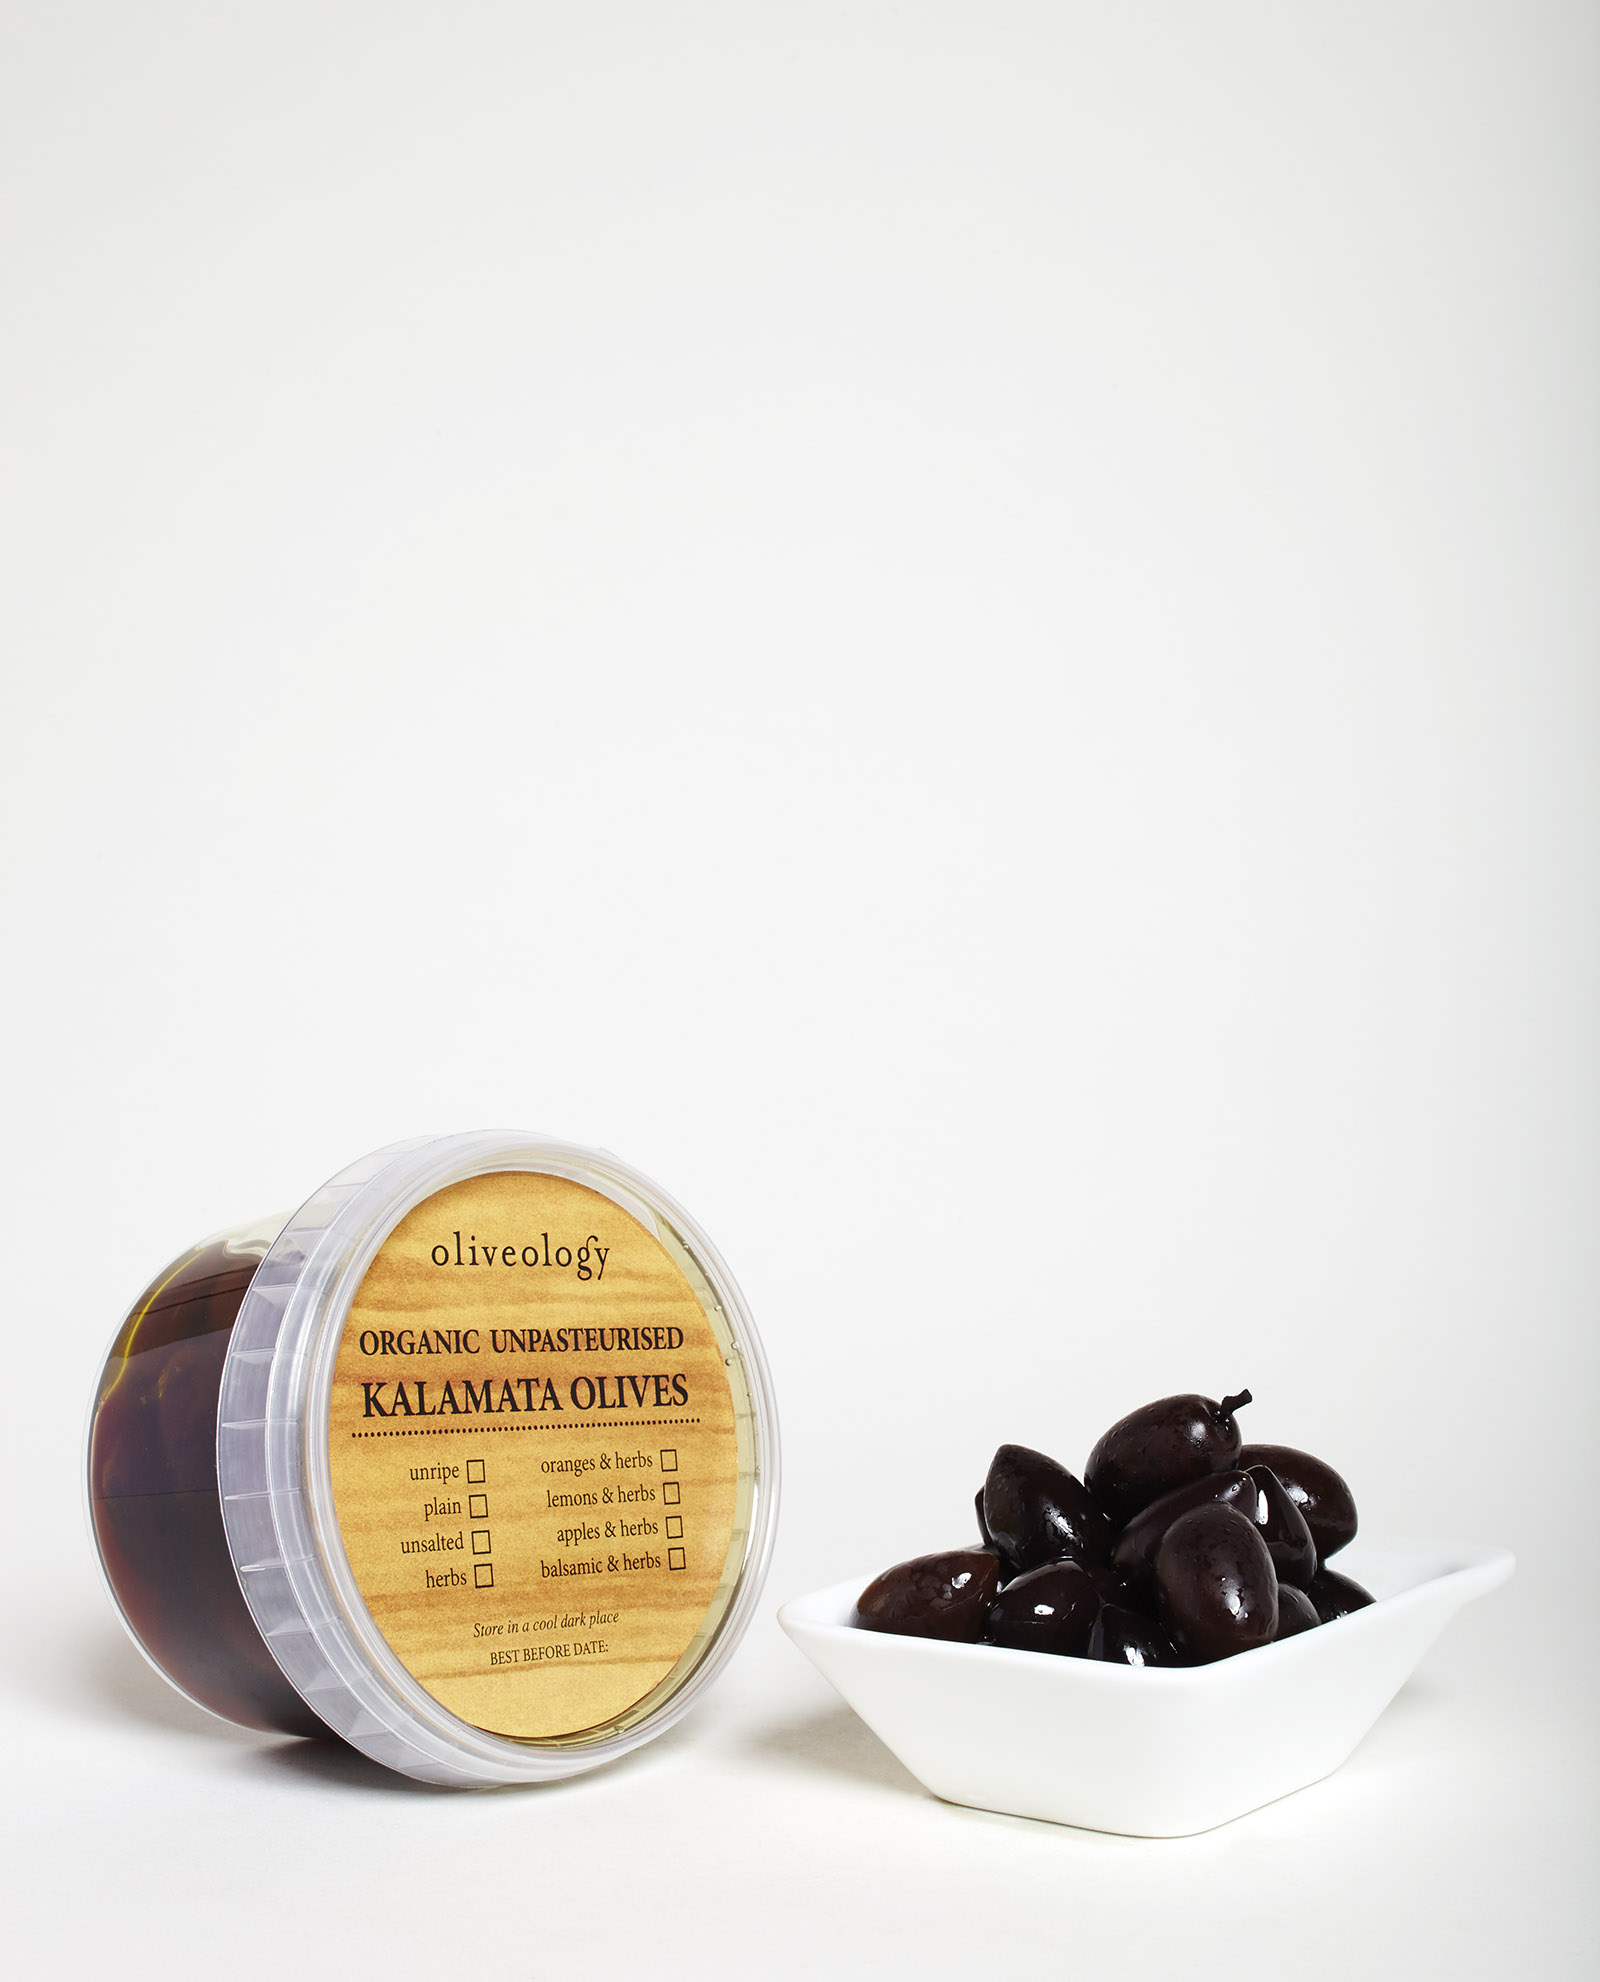 Kalamata olives with ouzo - Oliveology Organic Artisan ...